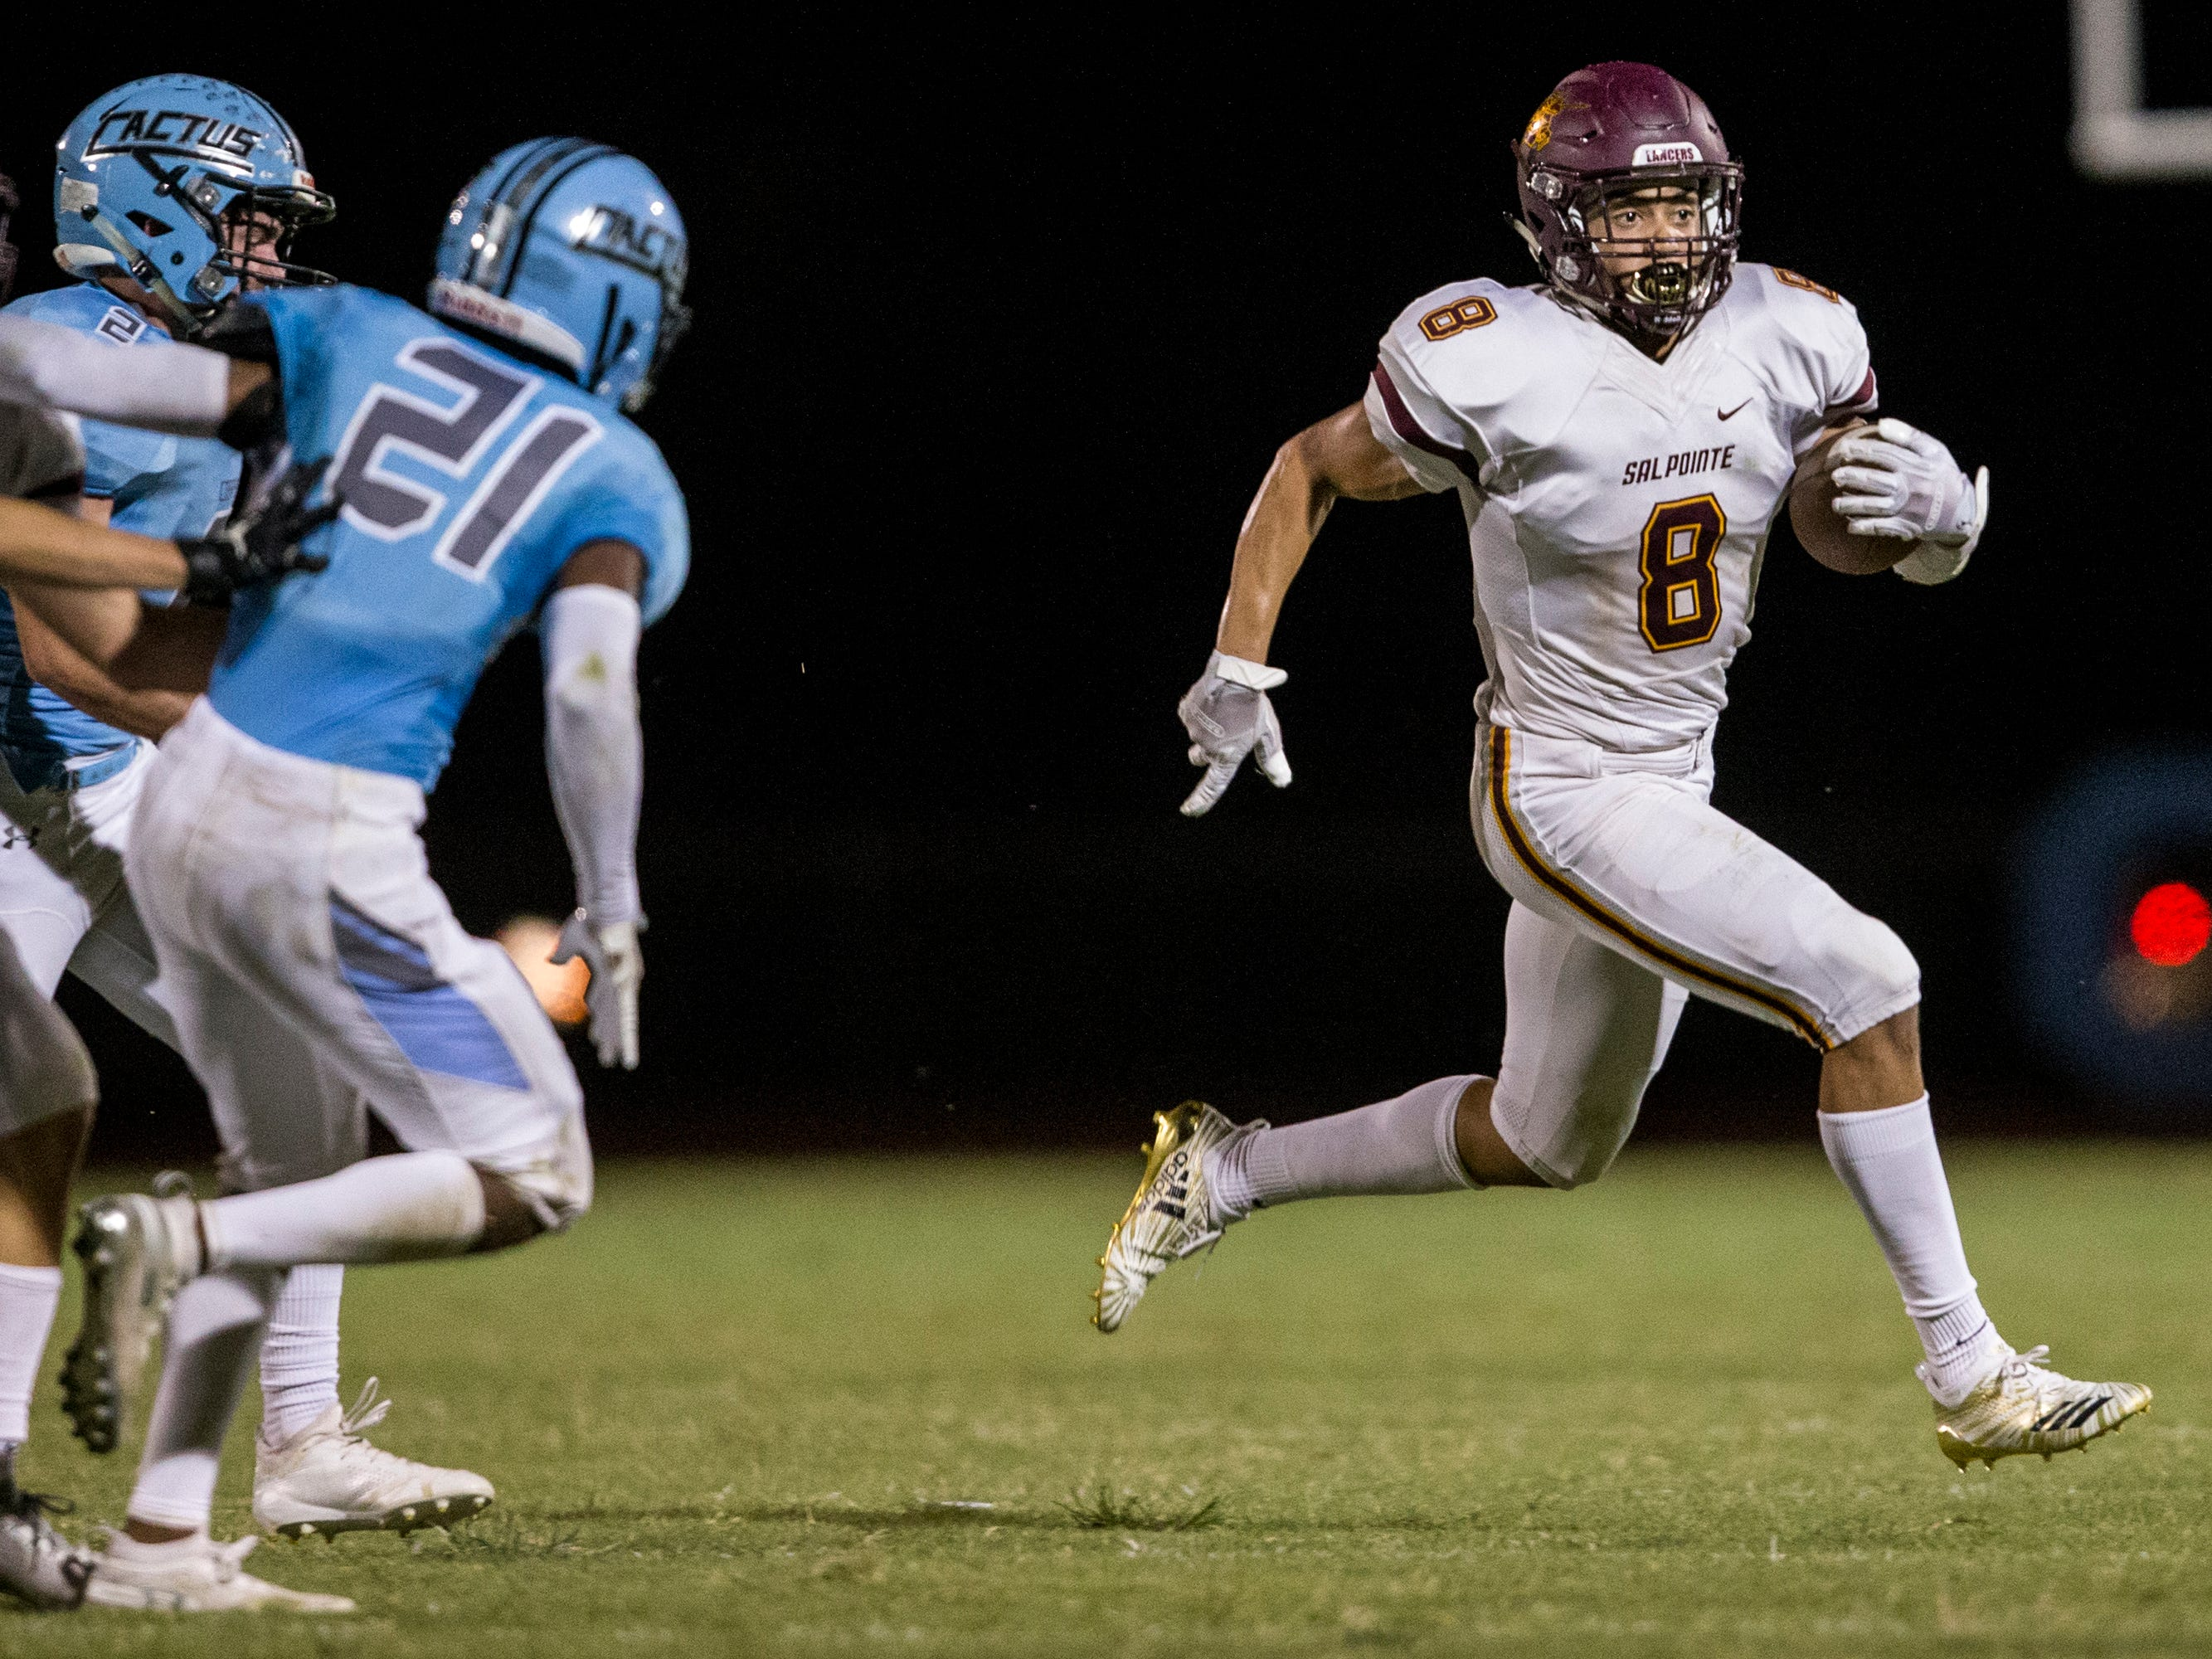 Salpointe's Lathan Ransom rushes against Cactus in the 1st quarter on Friday, Sept. 14, 2018, at Cactus High School in Glendale, Ariz.